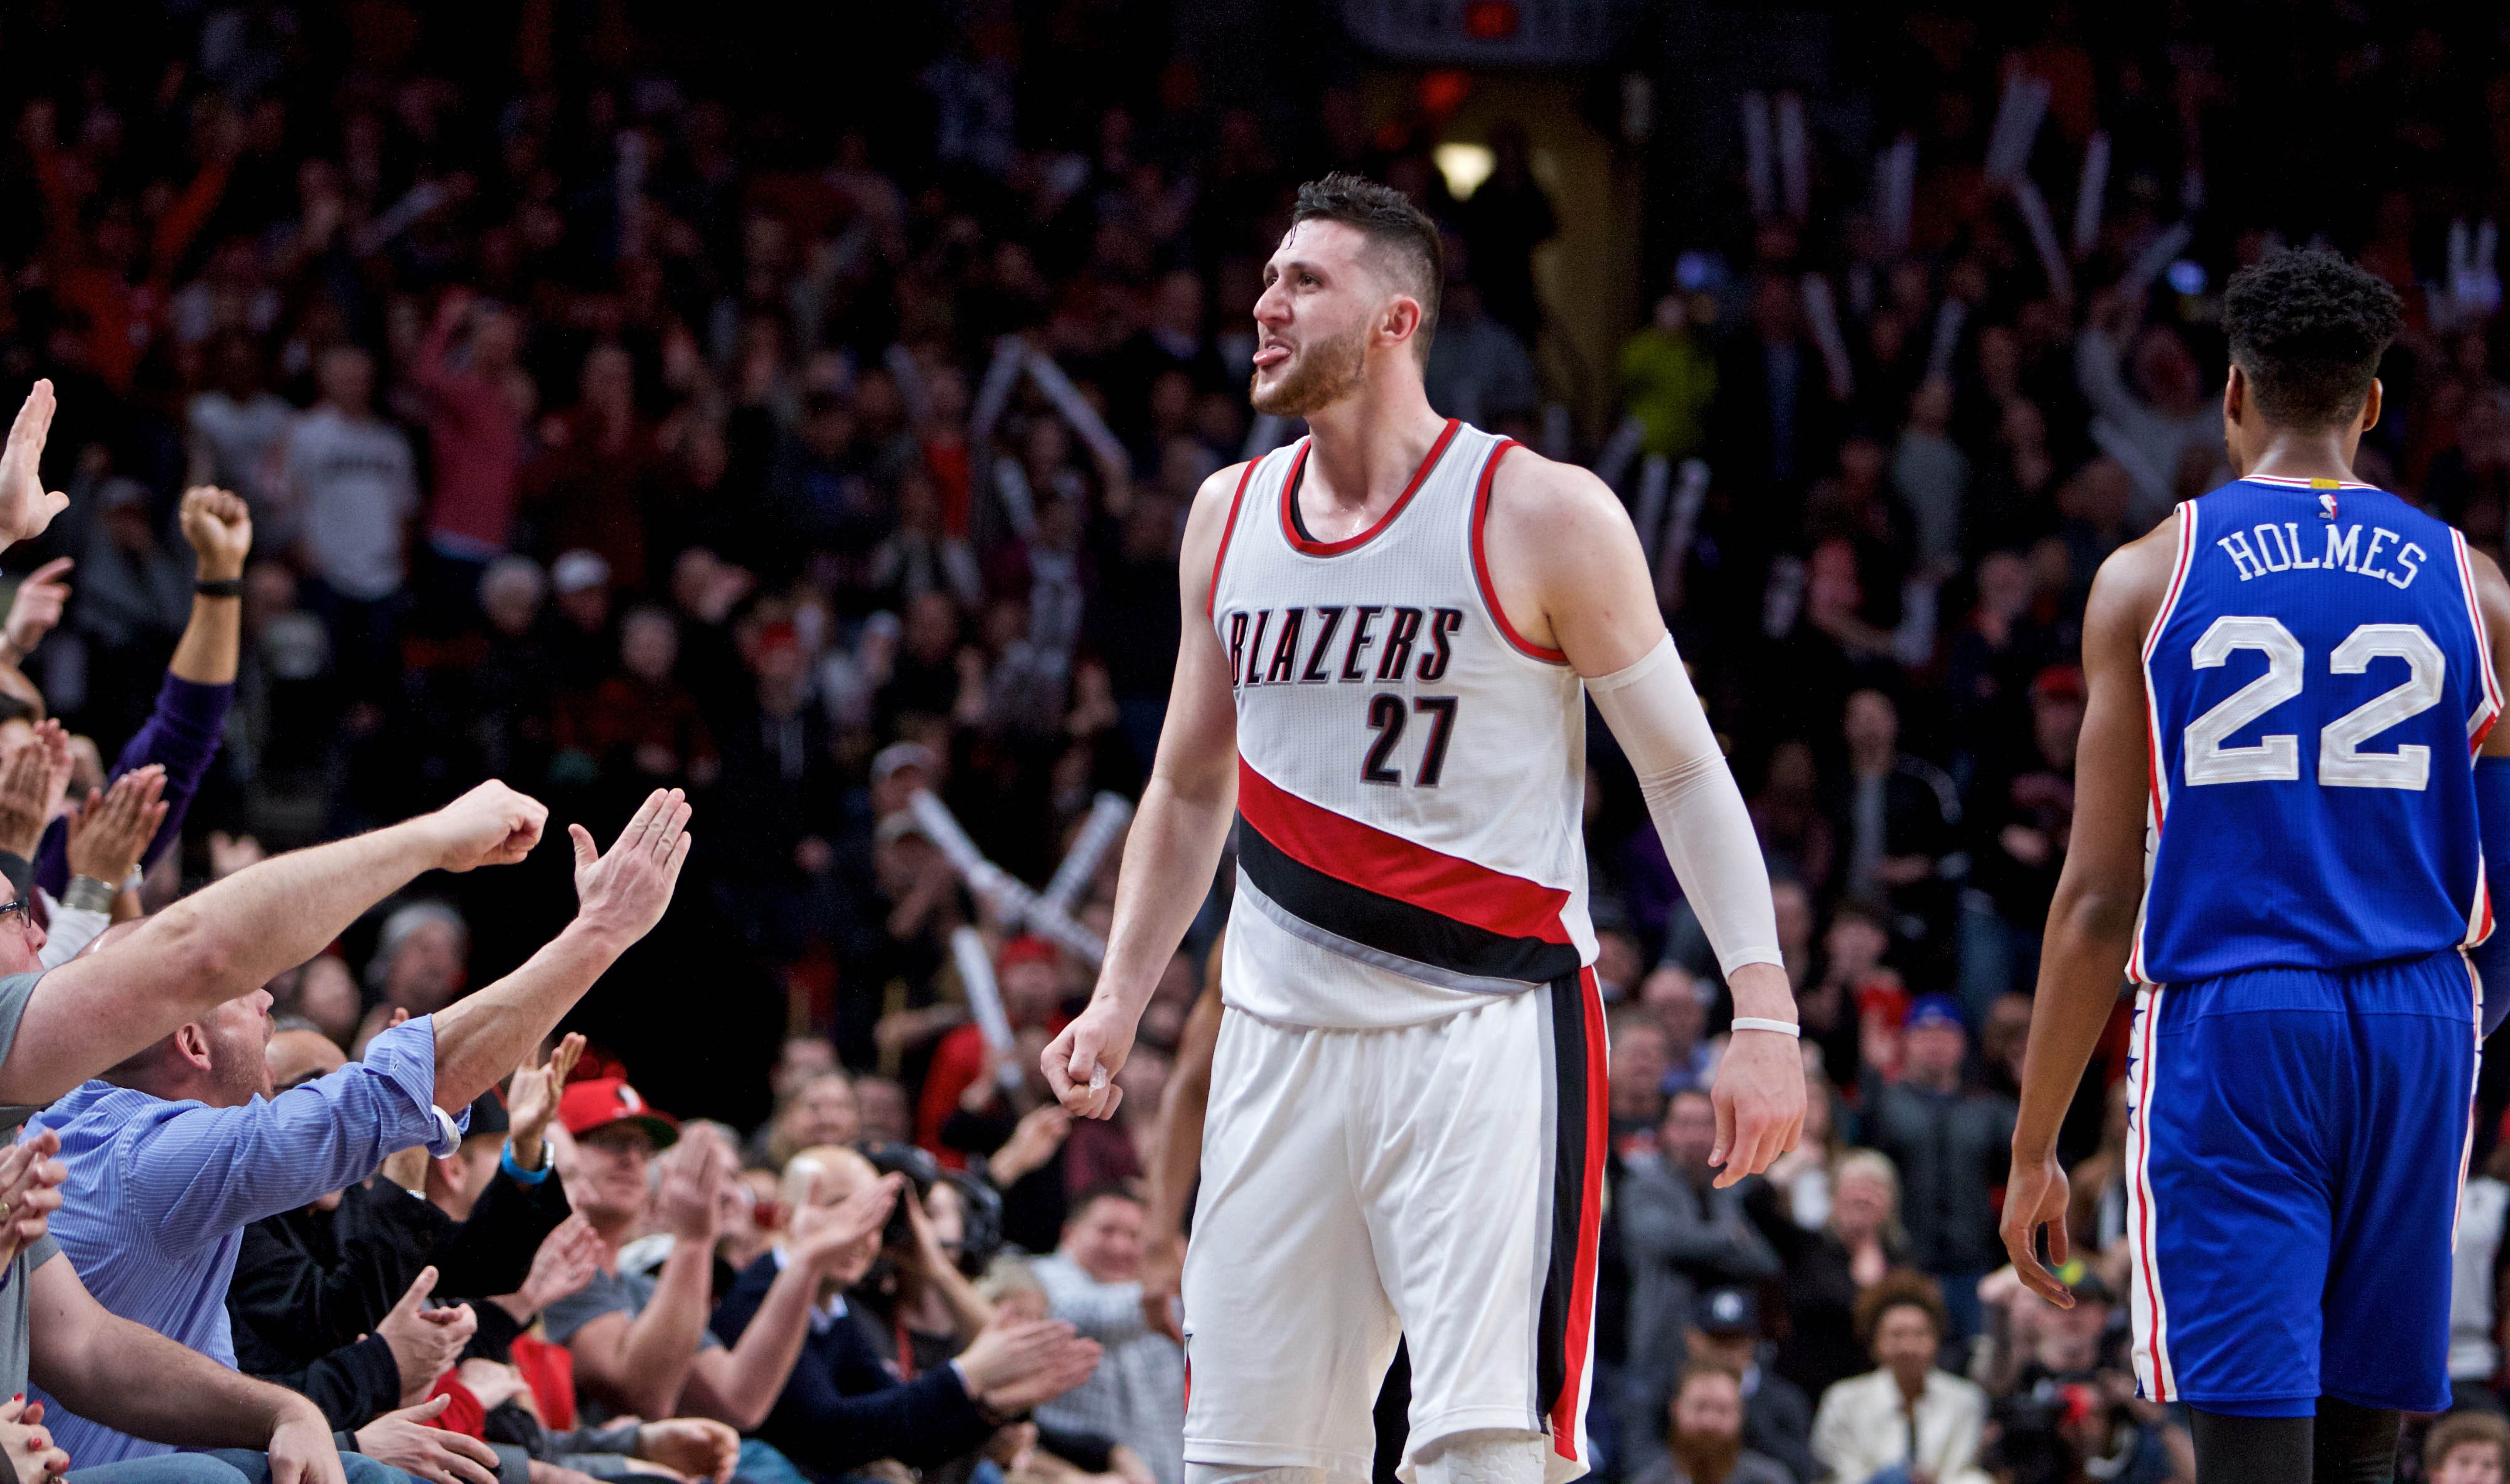 Markieff Morris jumper in OT lifts Washington Wizards past Portland Trail Blazers